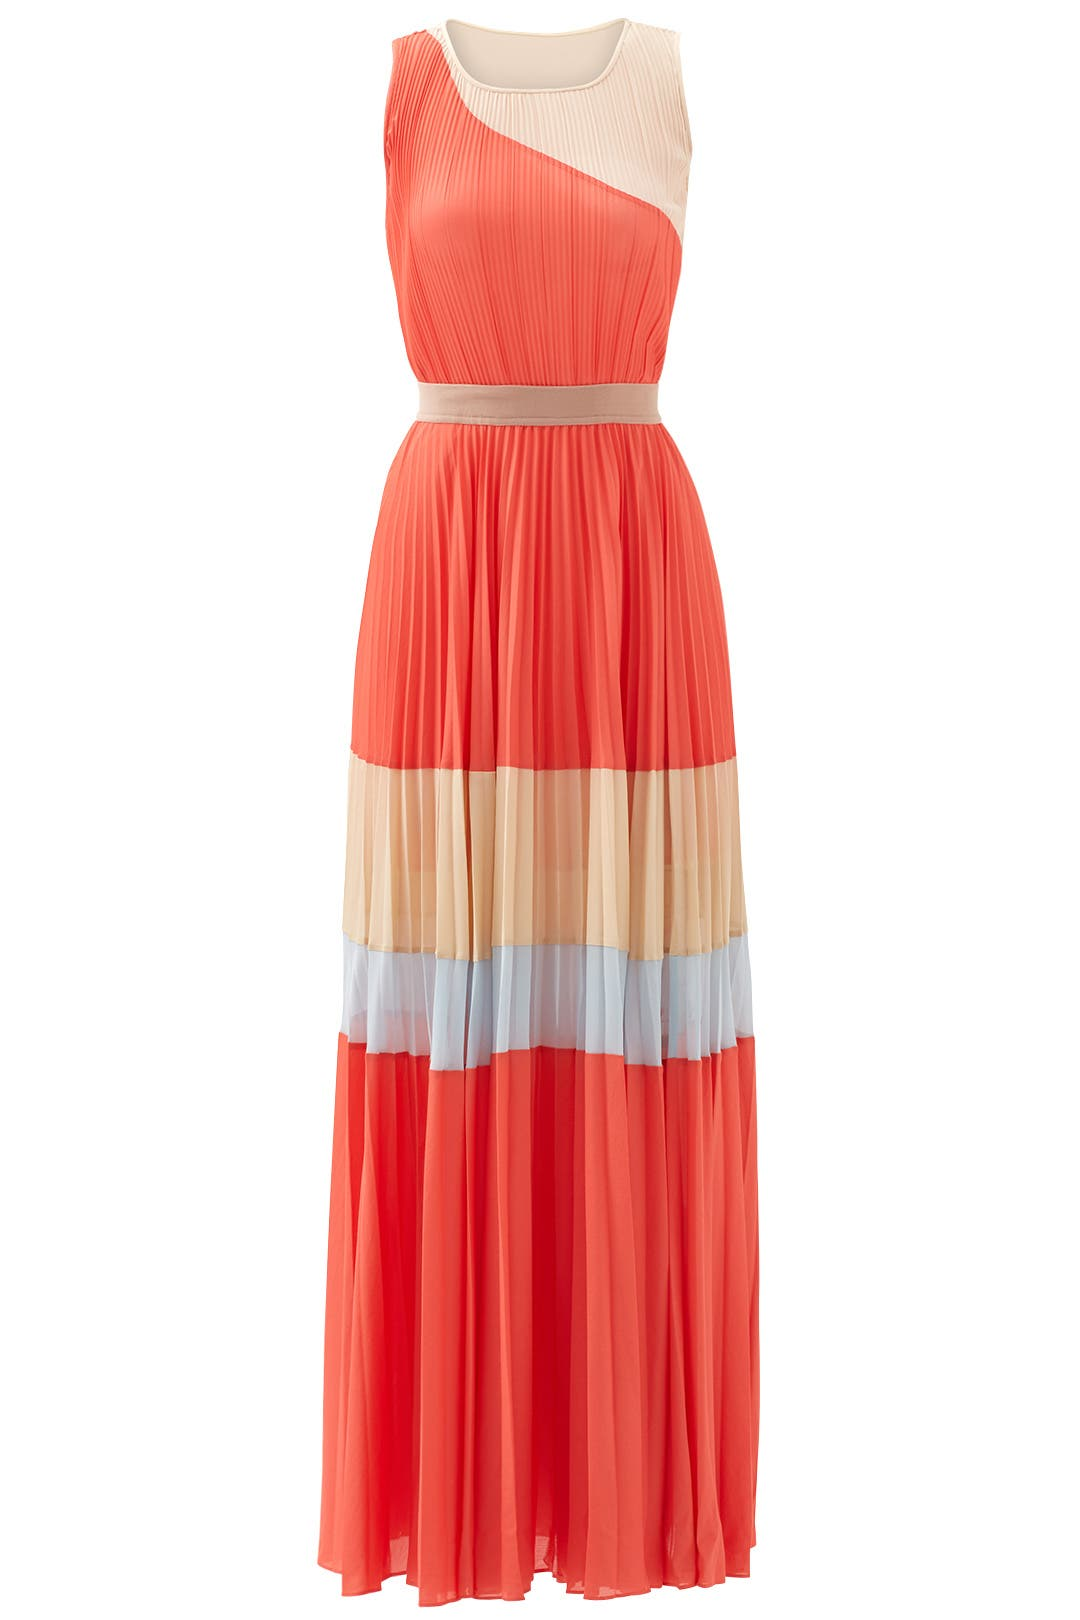 Flutter and Flirt Gown by BCBGMAXAZRIA for $105 | Rent the Runway